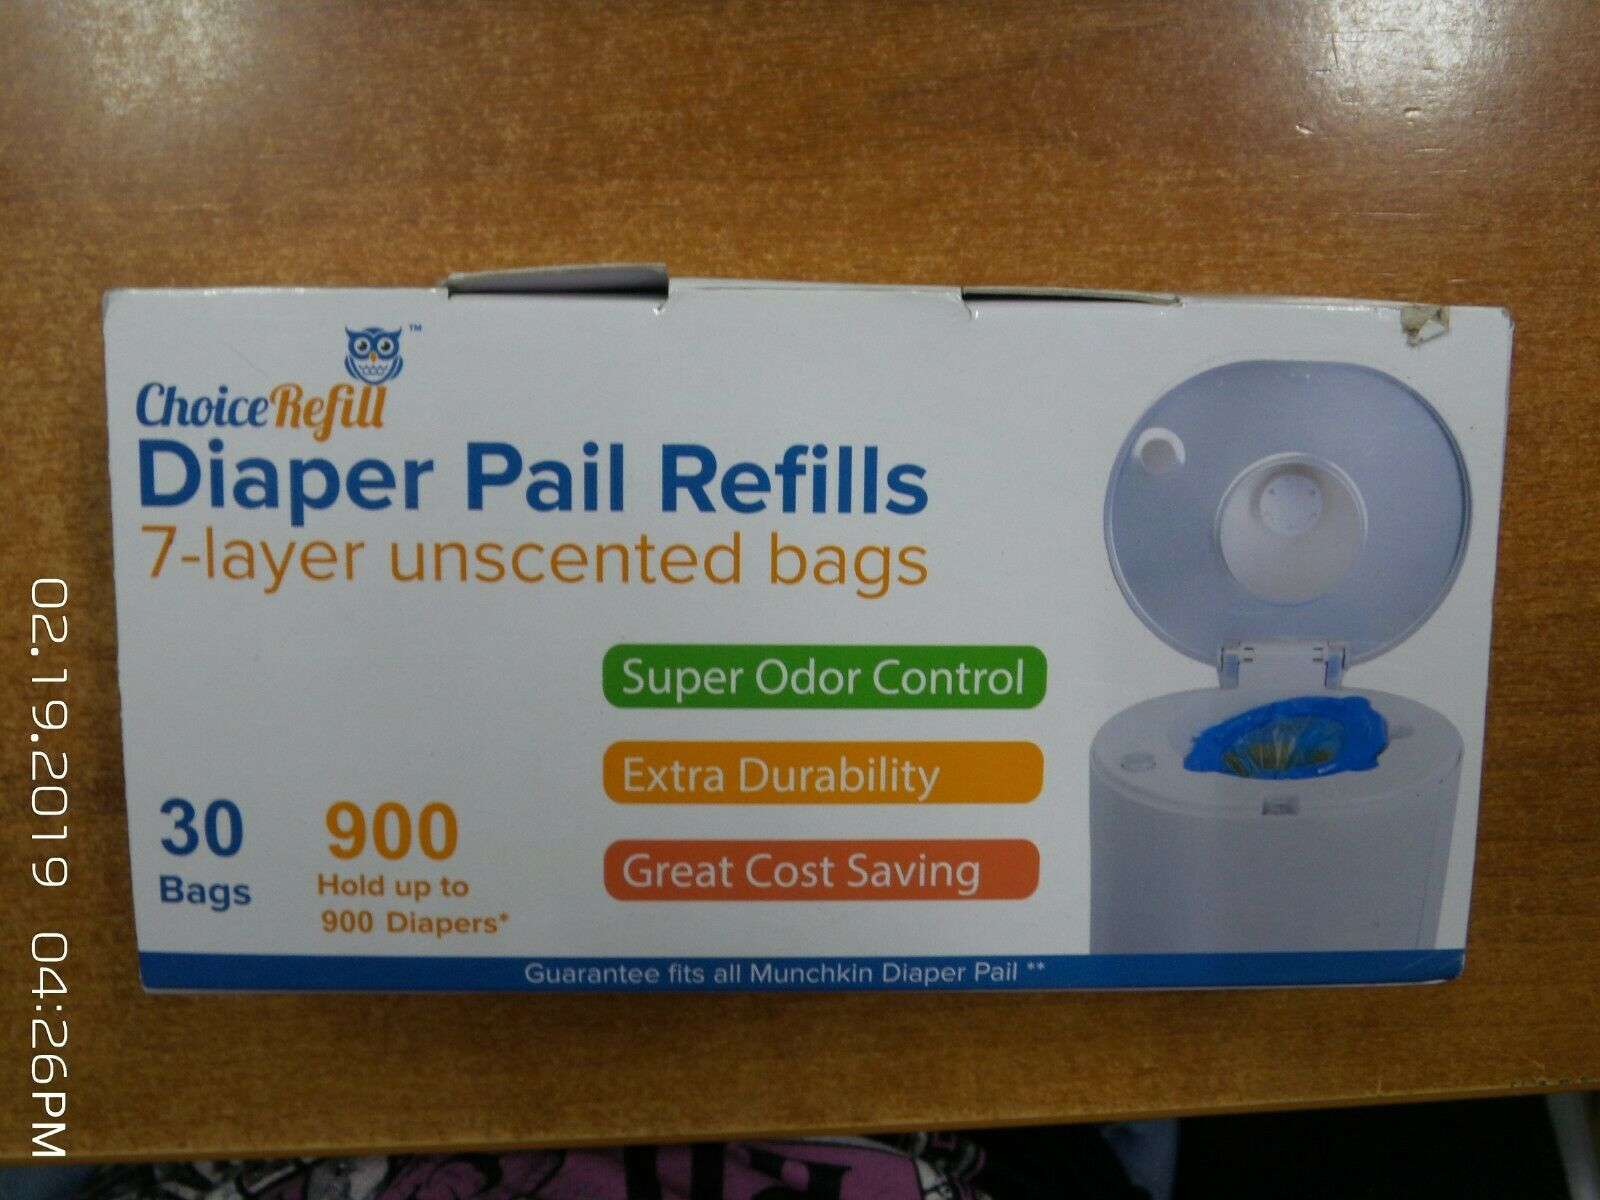 Choice Refill Diaper Pail Refills 7-Layer Unscented Bags